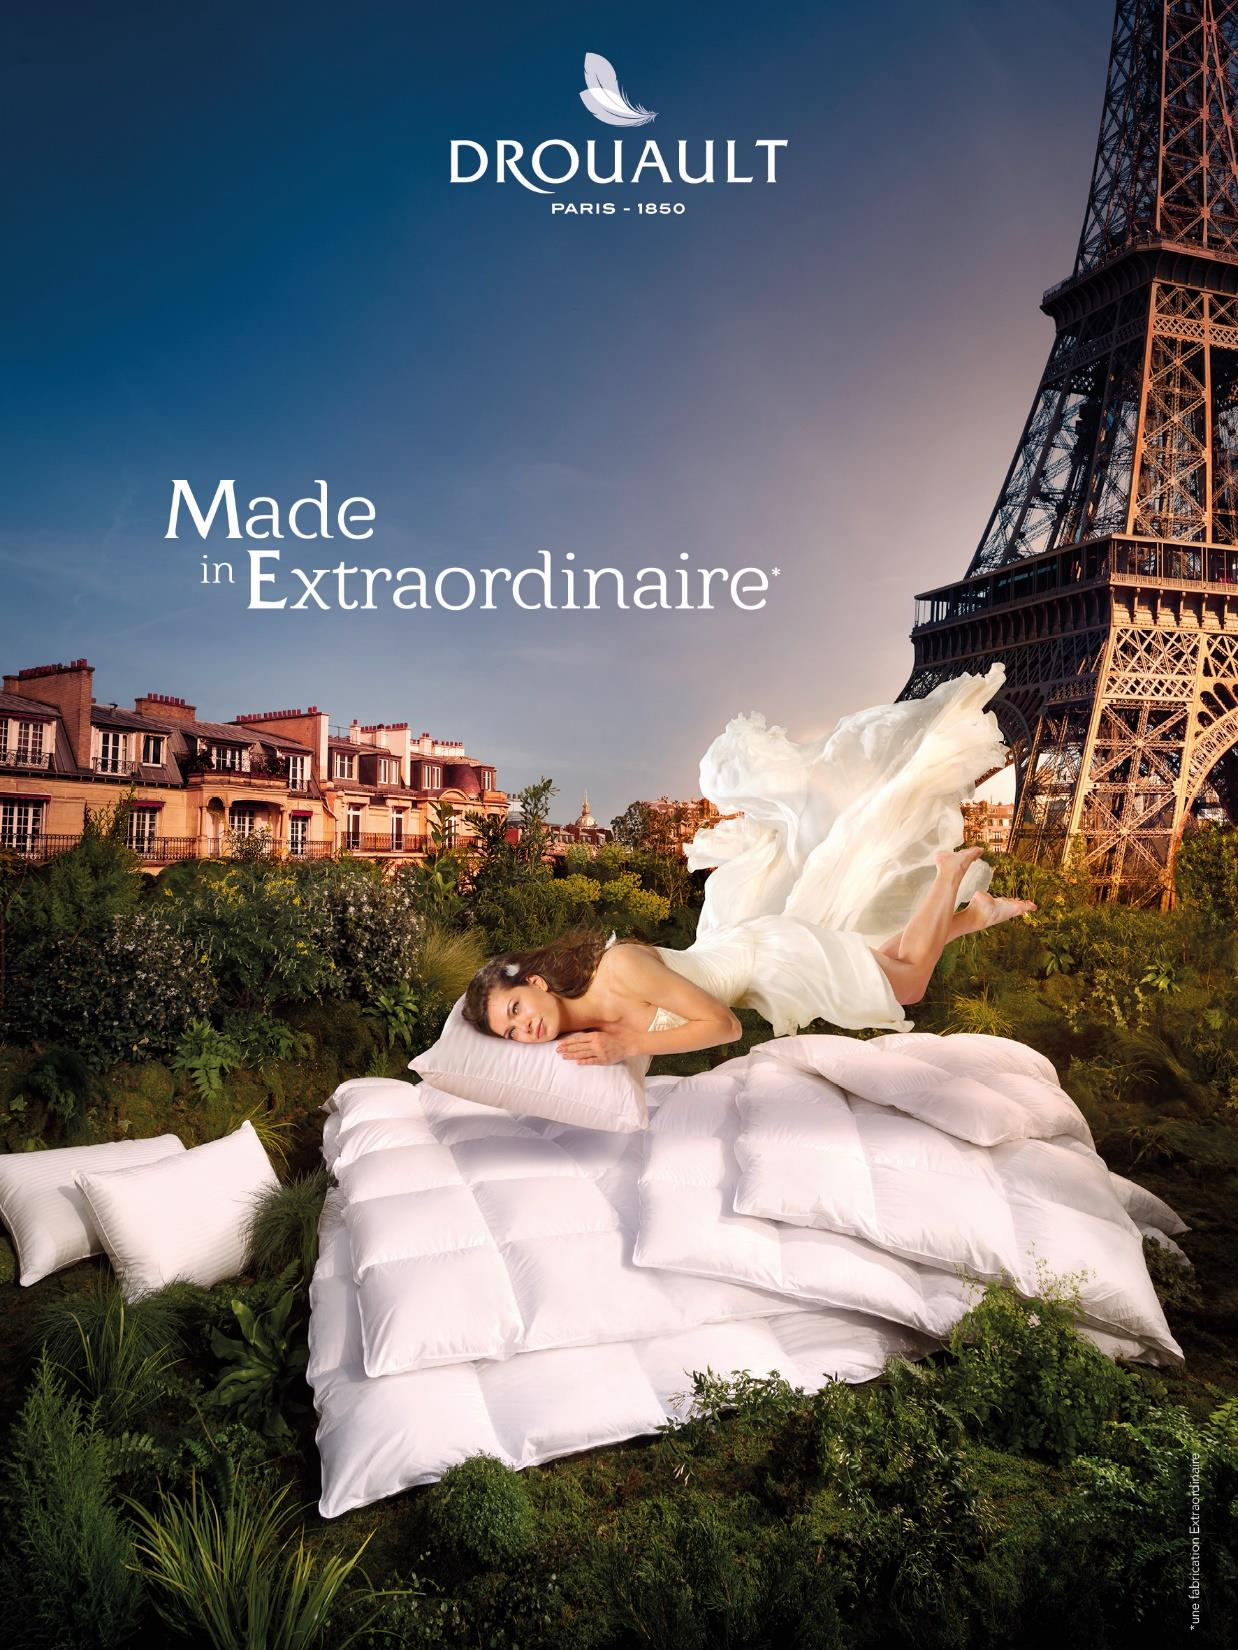 Maison Drouault - Made in Extraordinaire